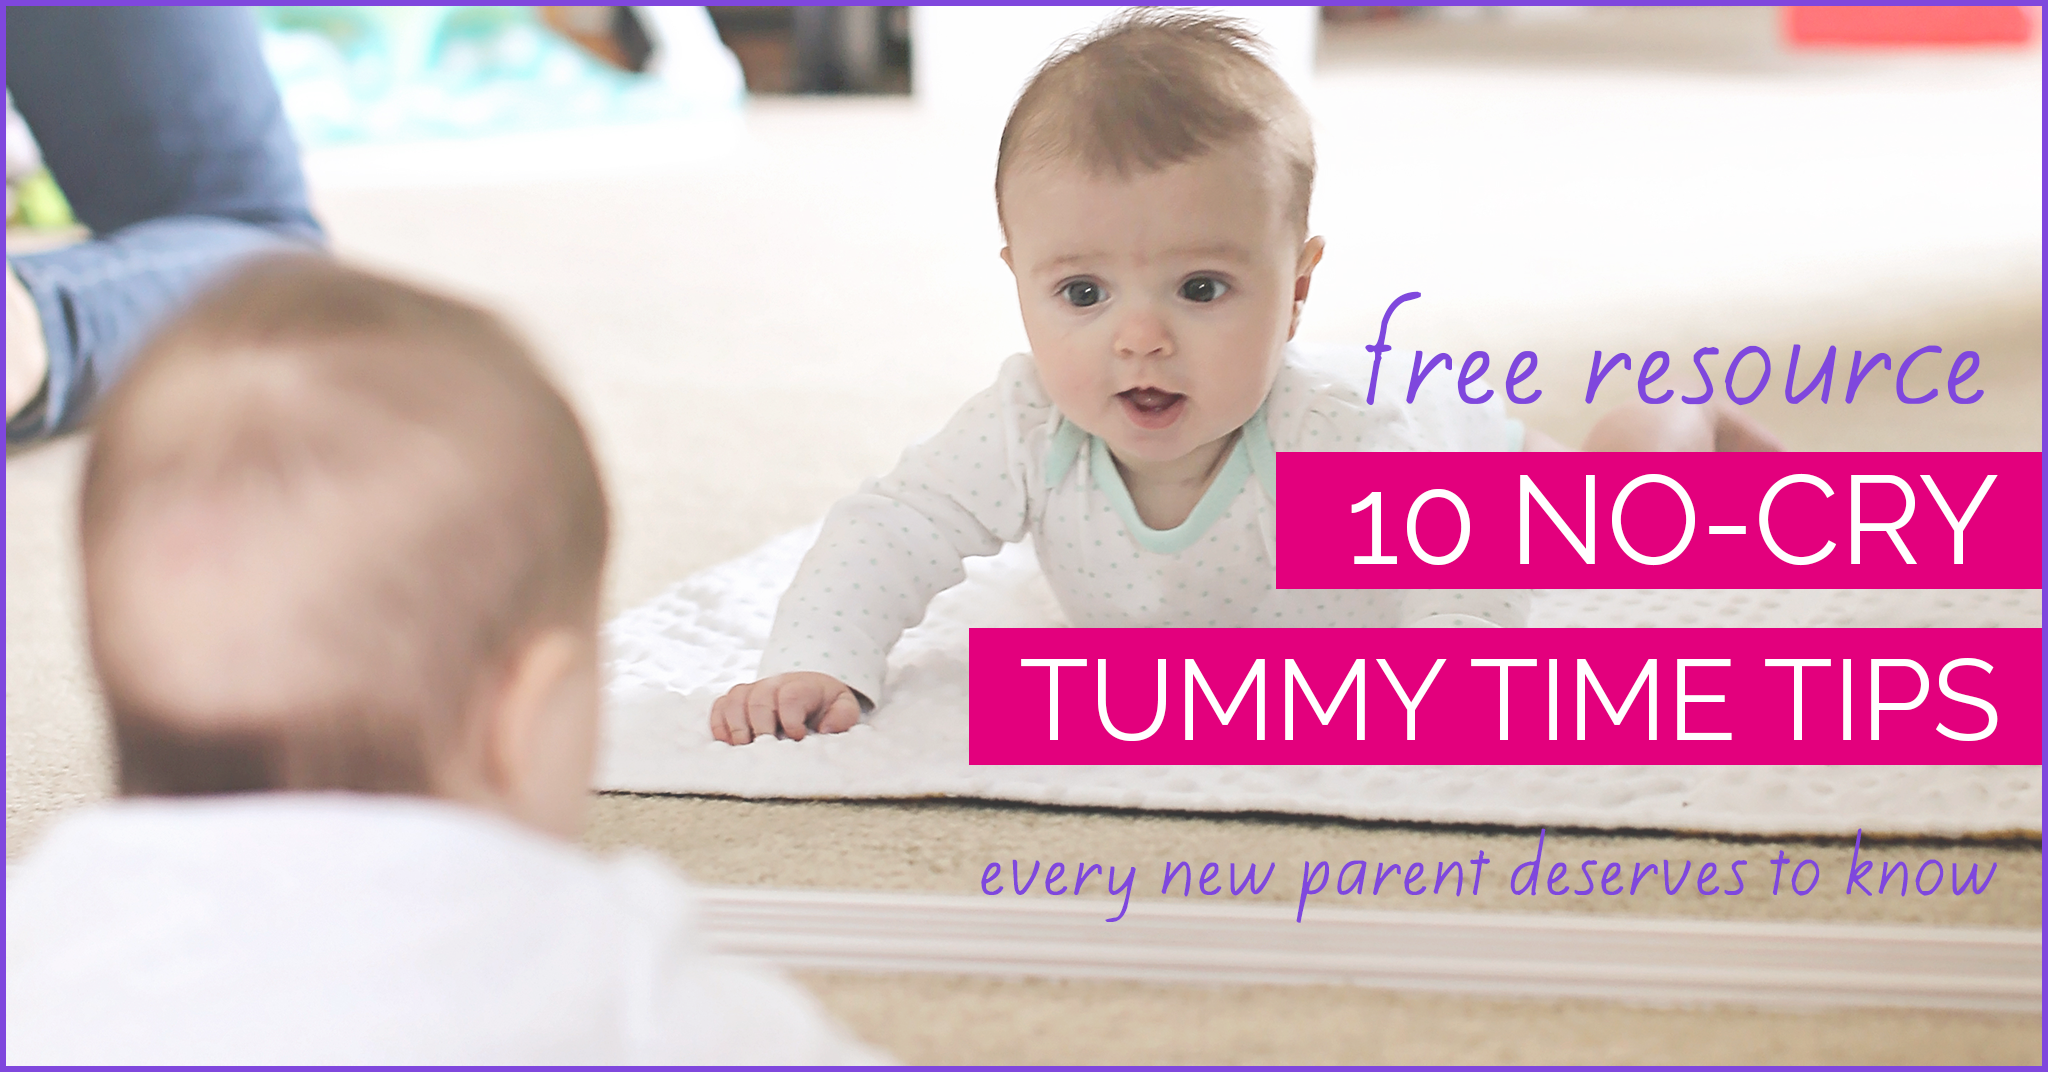 Tummy Time Tips from CanDo Kiddo   www.candokiddo.com